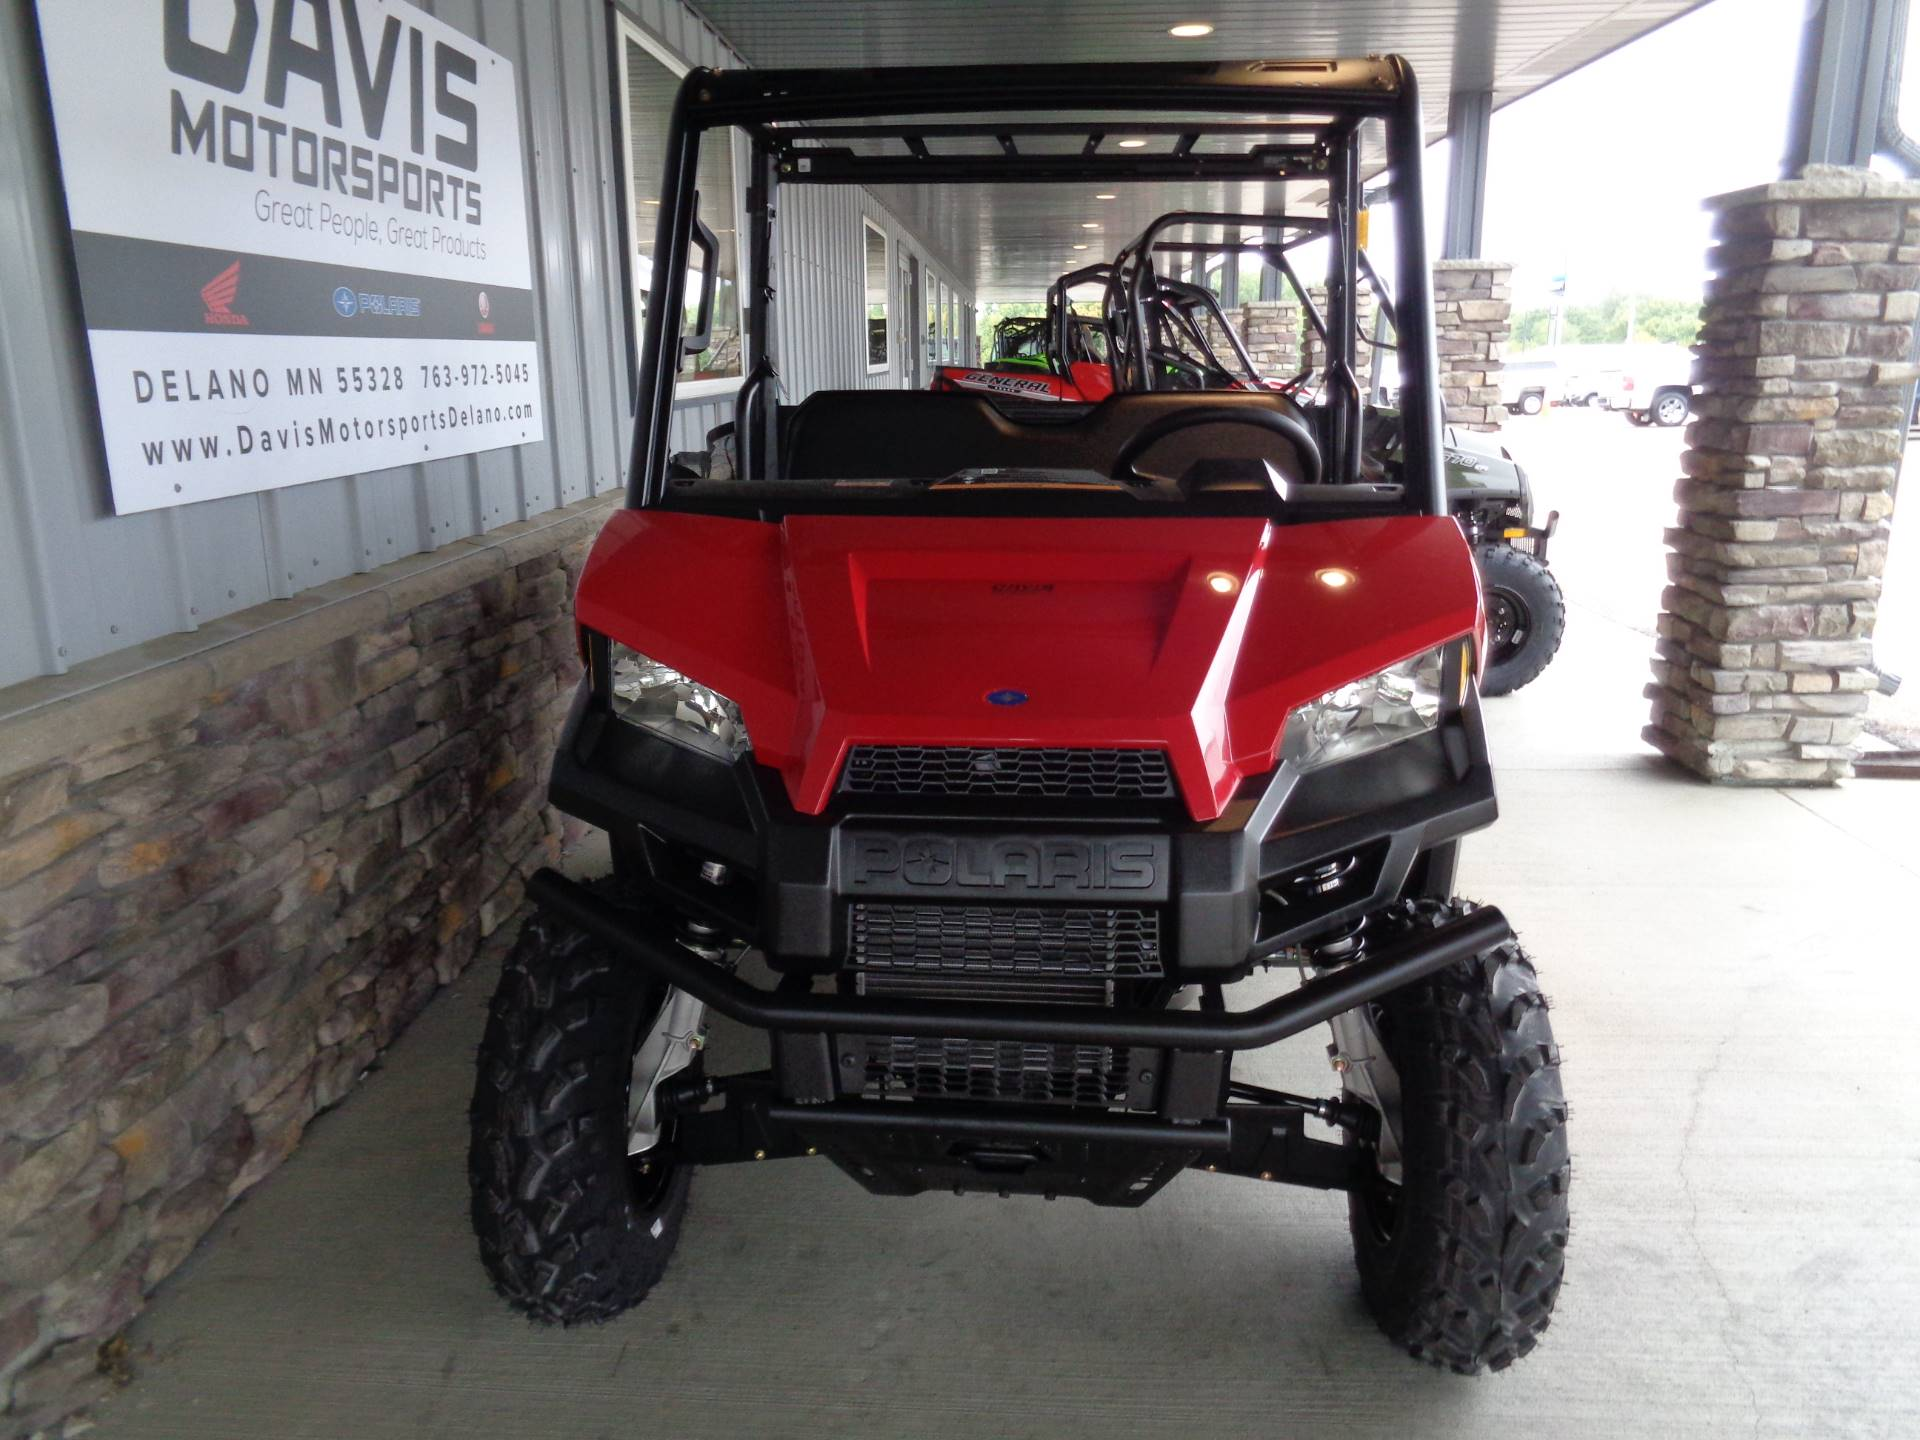 2020 Polaris Ranger 500 in Delano, Minnesota - Photo 9